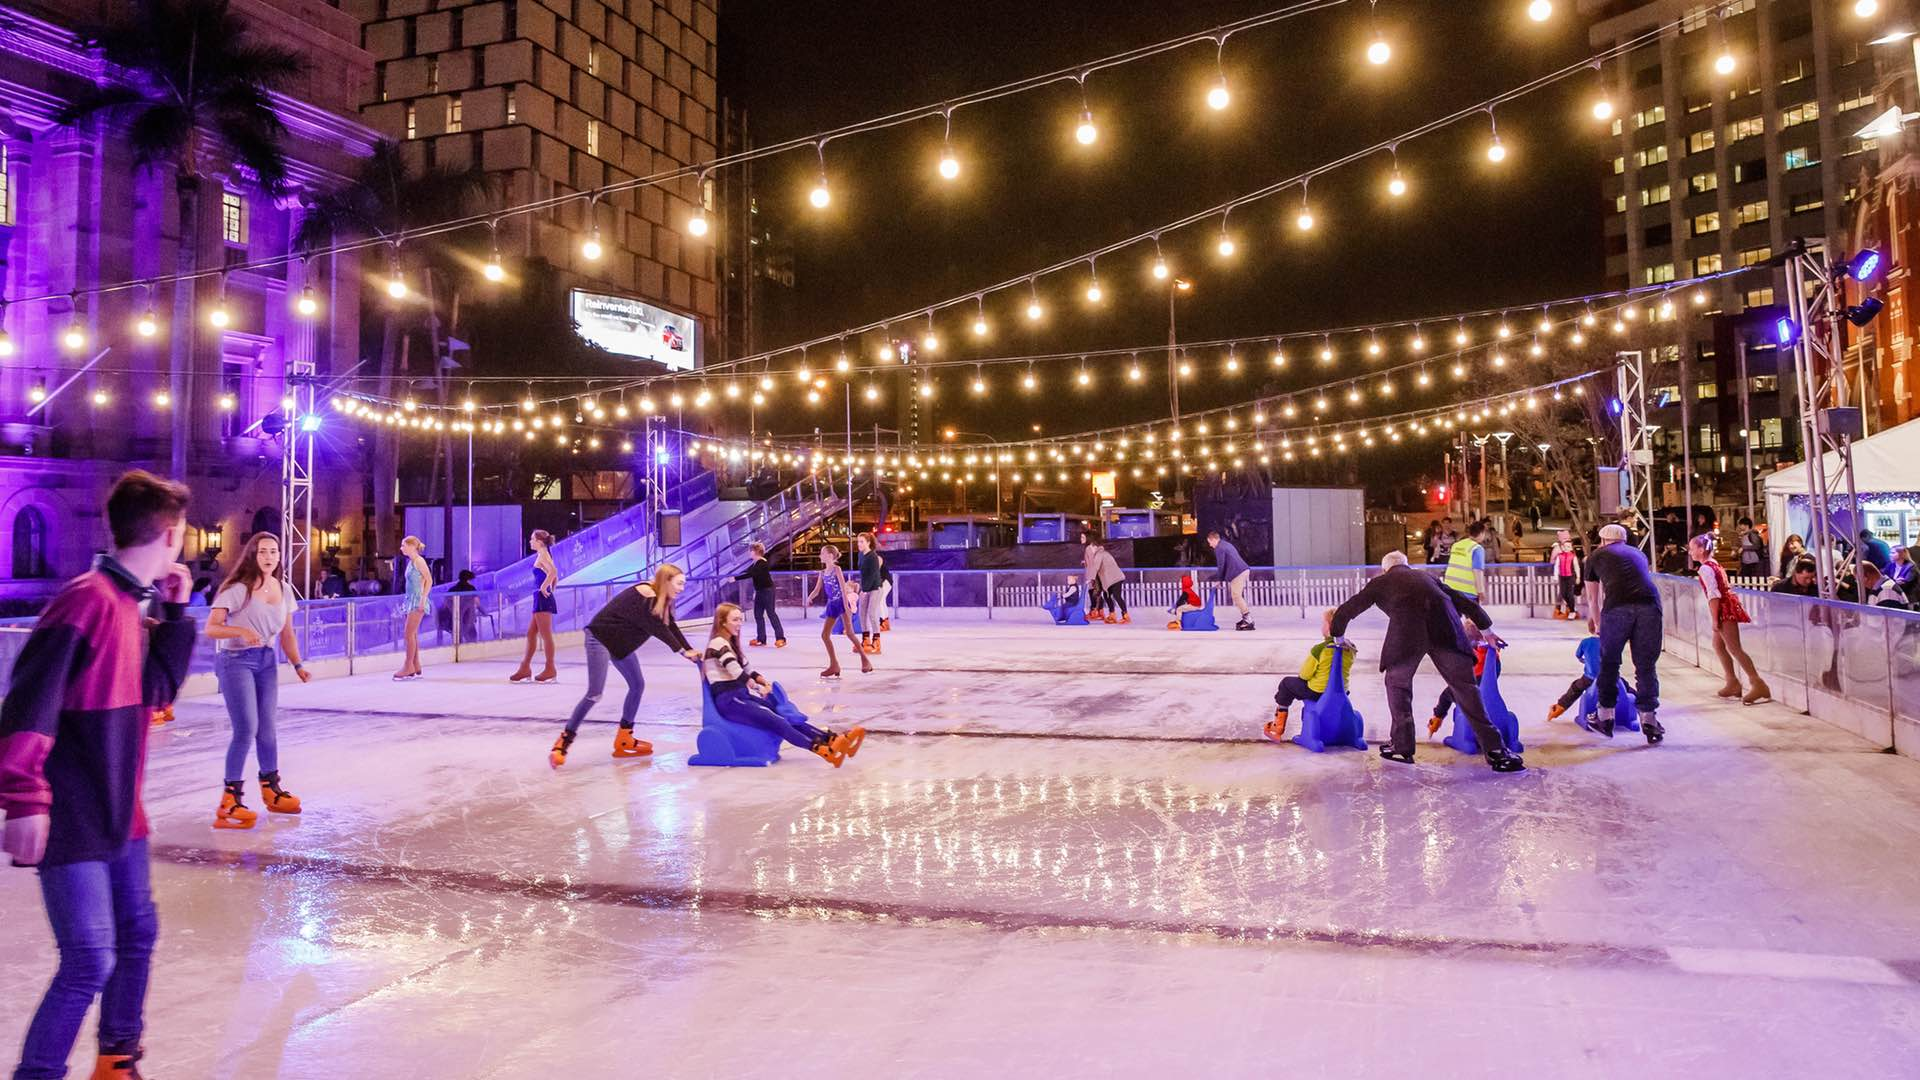 Brisbane's Best Wintry Events That Will Get You Out of the House Even When It's Freezing